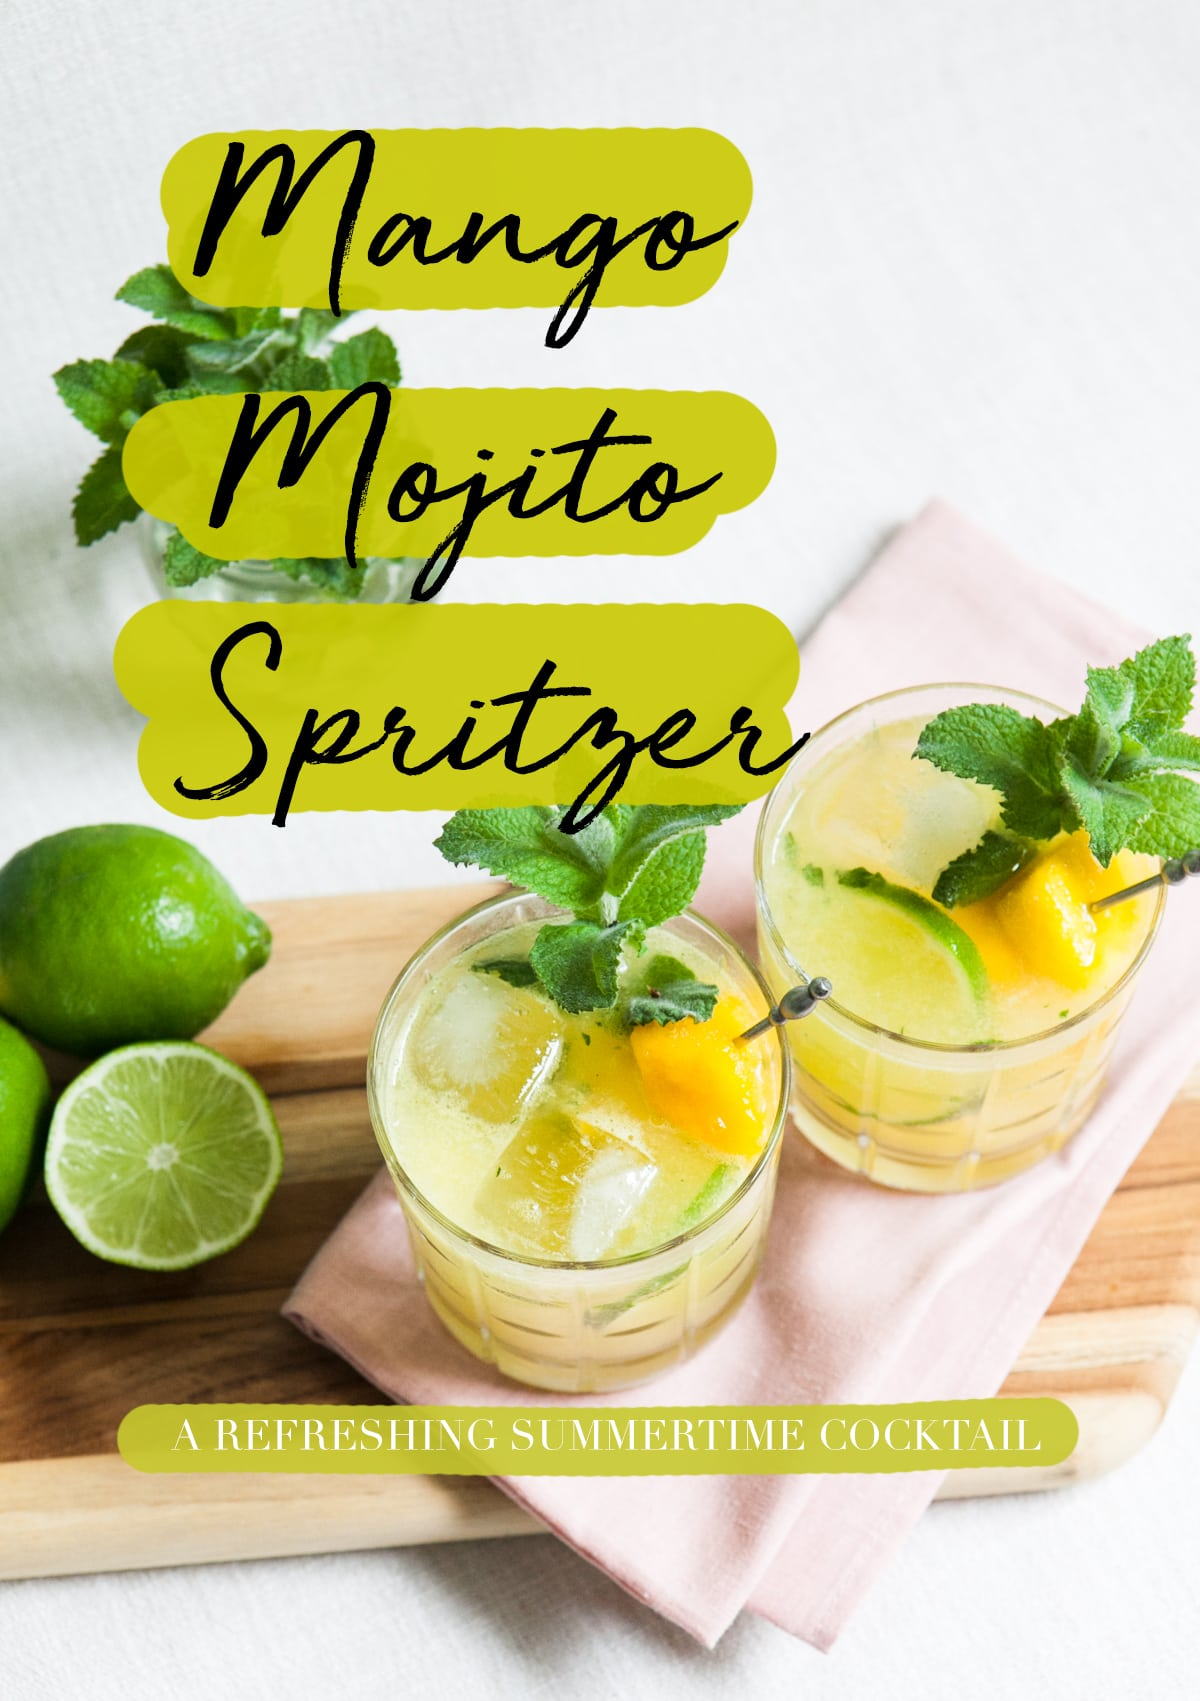 Mango Mojito Sprtizer | Easy Cocktail Recipe | Summer Cocktails | Jessica Brigham | Magazine Ready for Life